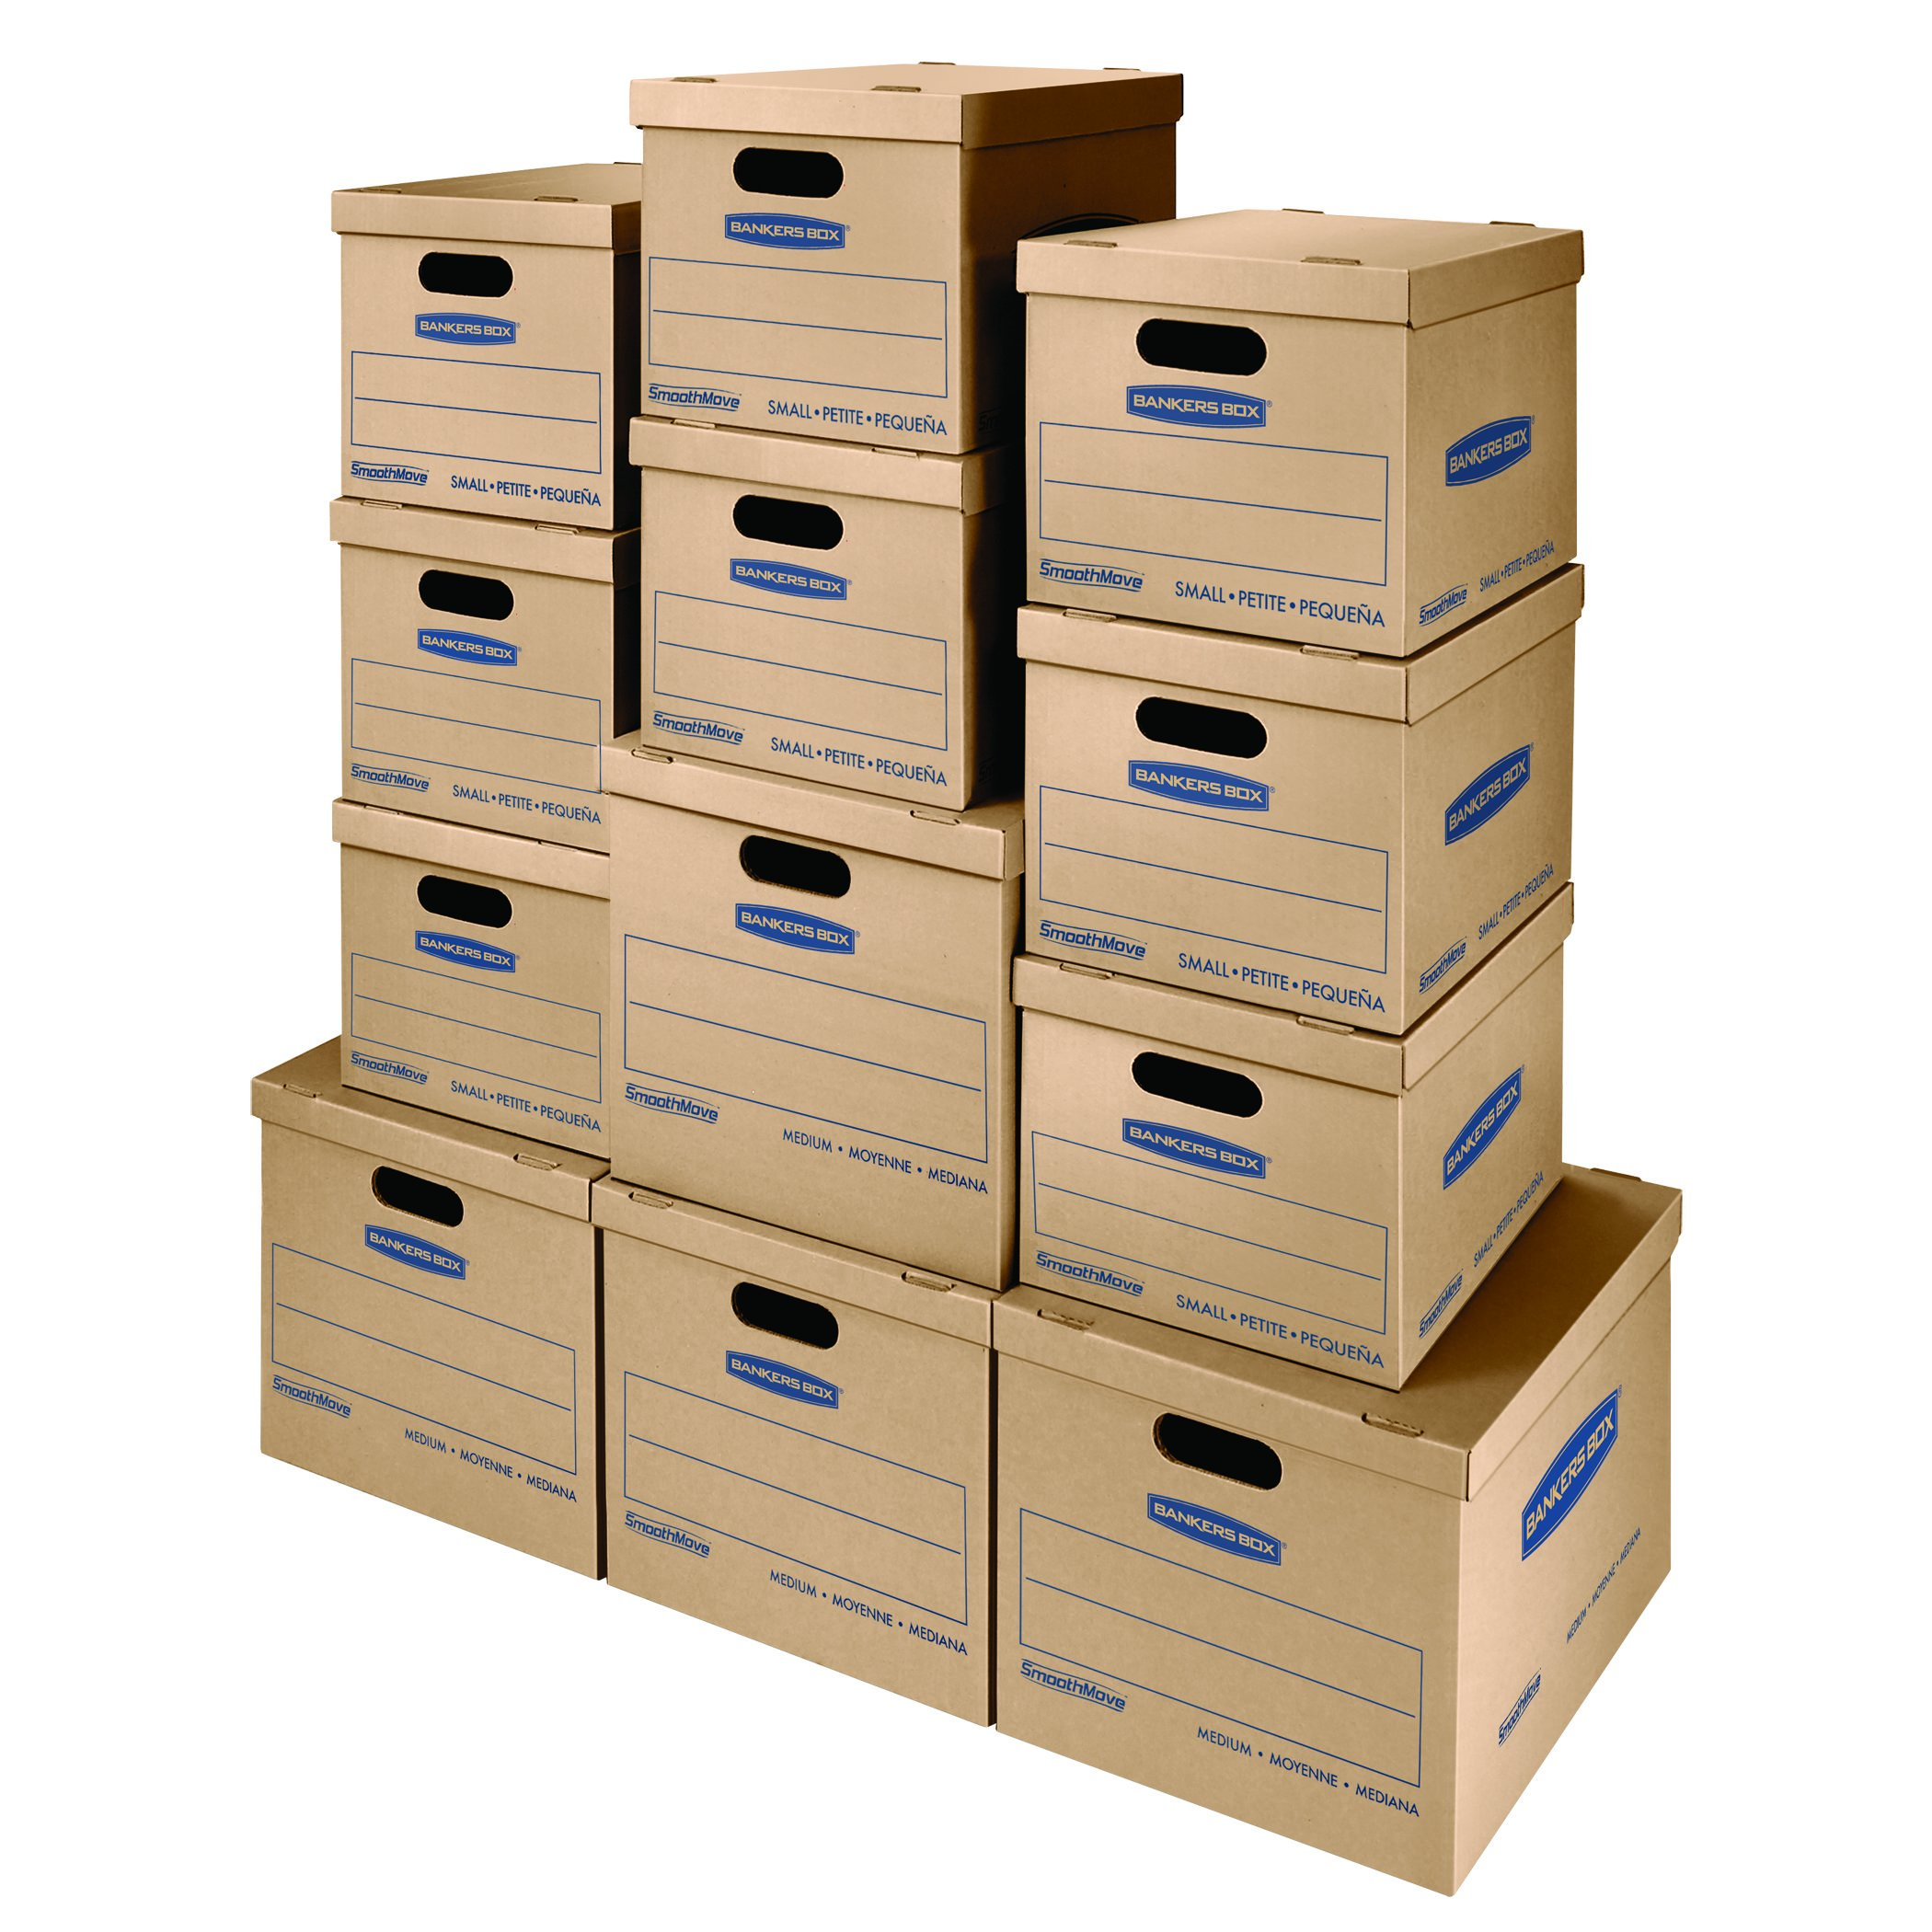 Bankers Box SmoothMove Classic Moving Kit Boxes, Tape-Free Assembly, Easy Carry Handles, 8 Small 4 Medium, 12 Pack (7716401) by Bankers Box